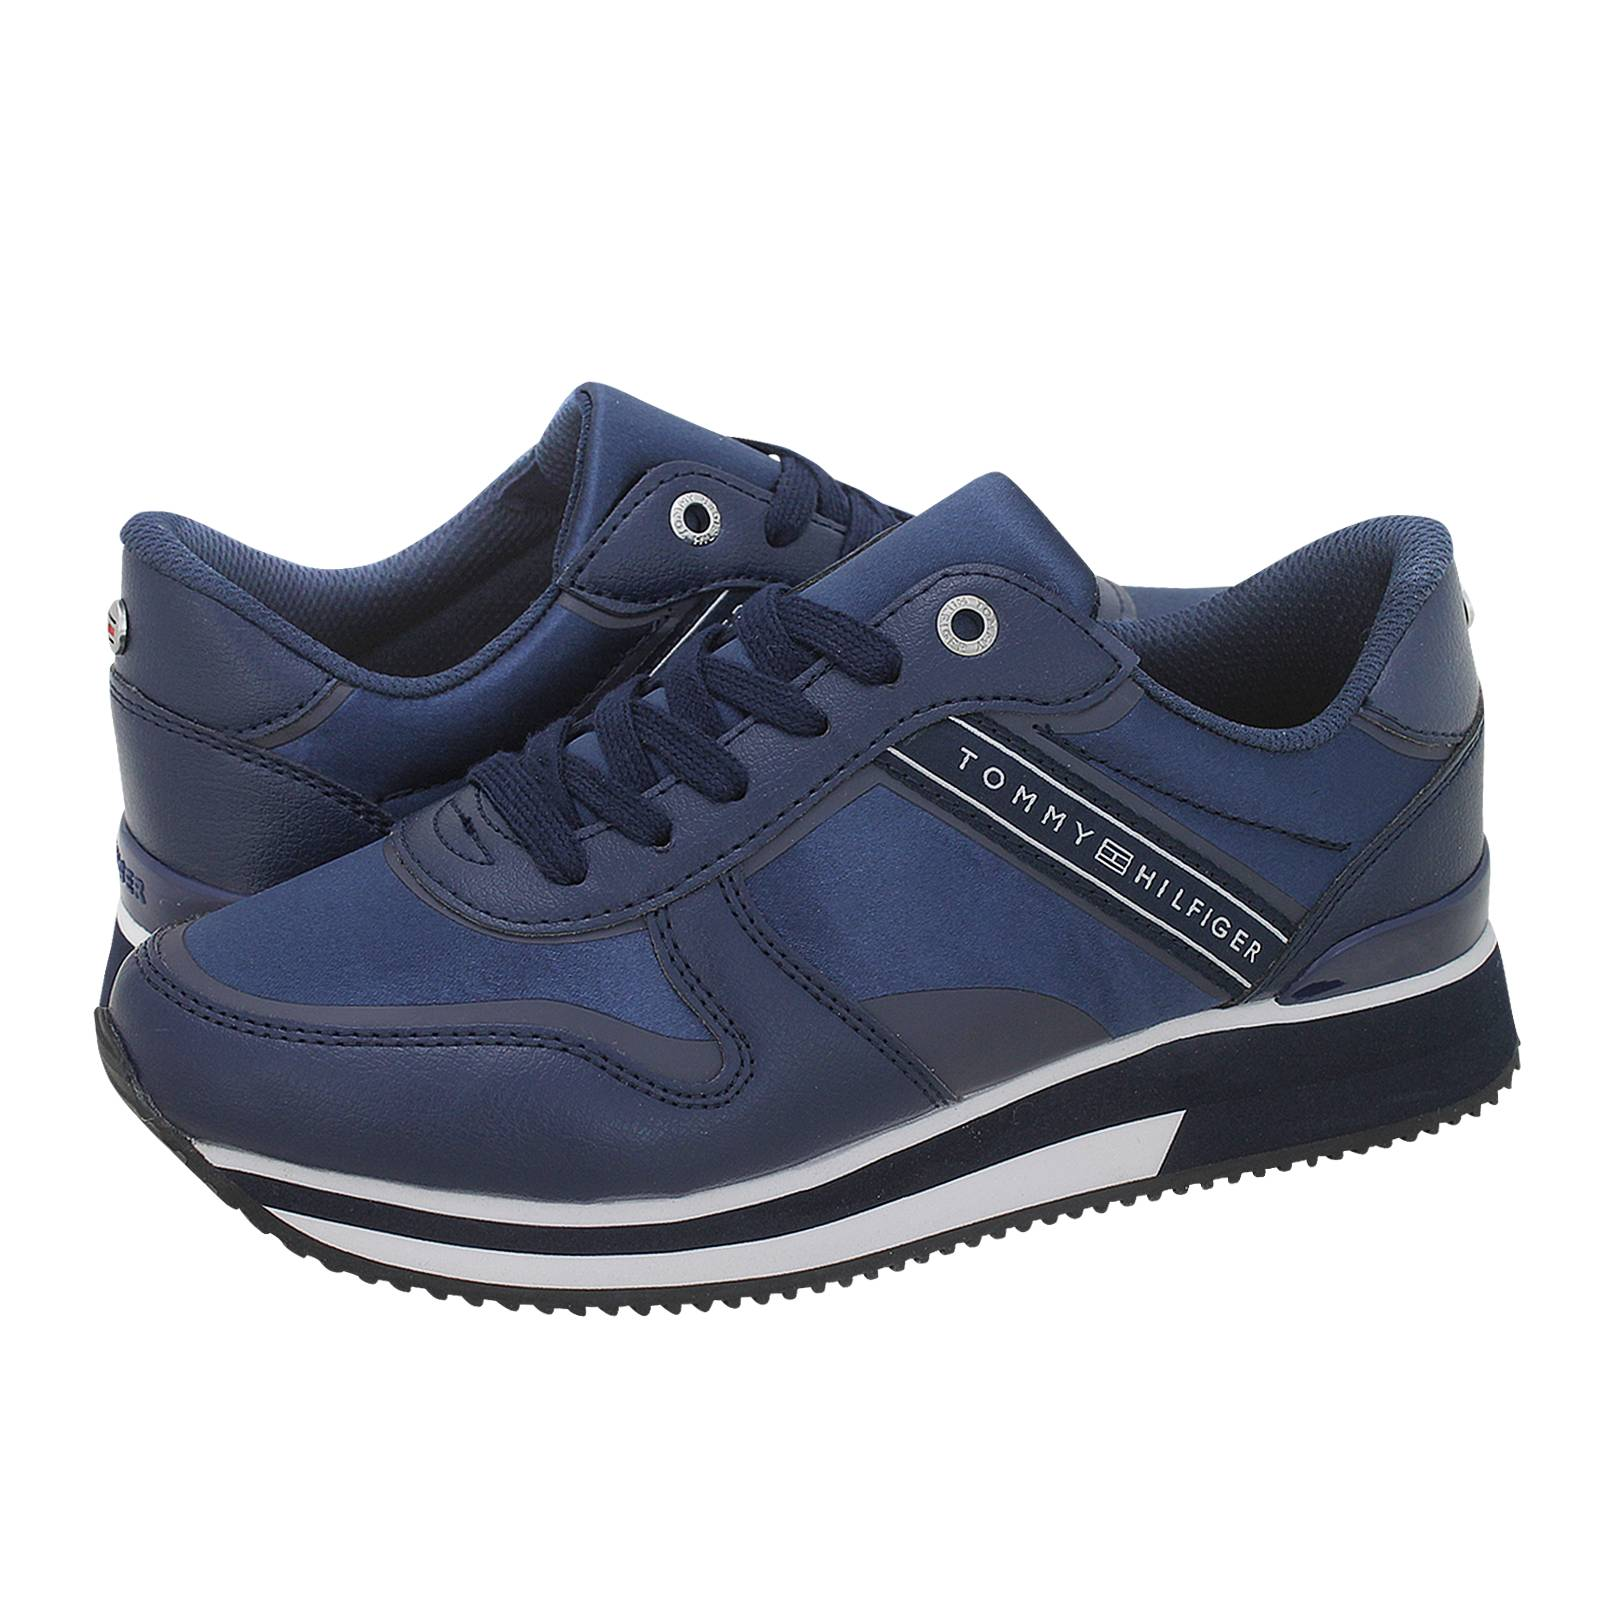 82343e74916 Παπούτσια casual Tommy Hilfiger Mixed Active City Sneaker